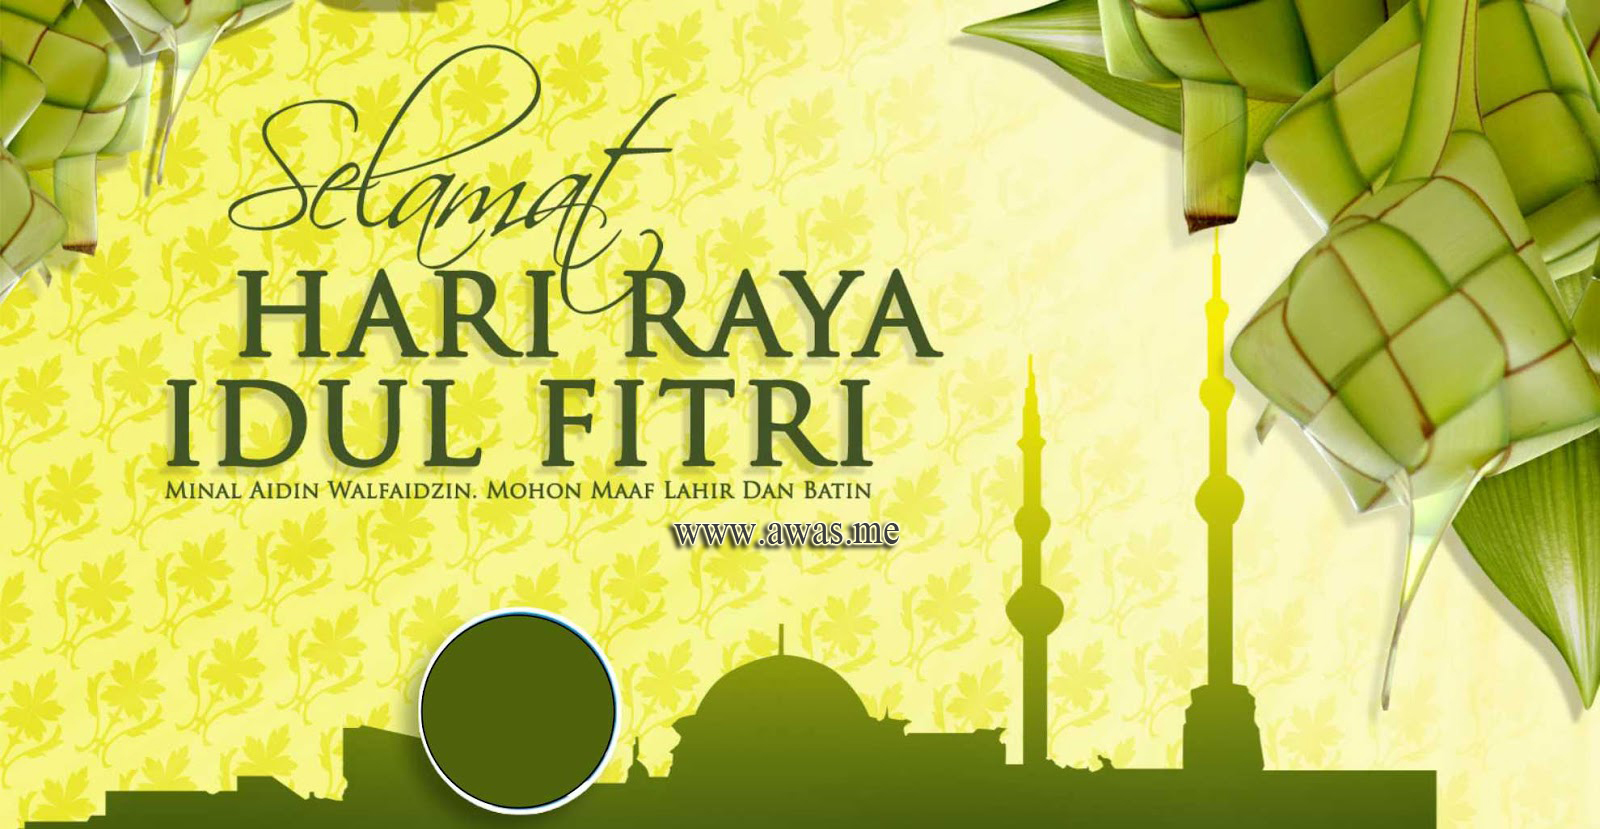 Contoh Banner Idul Fitri